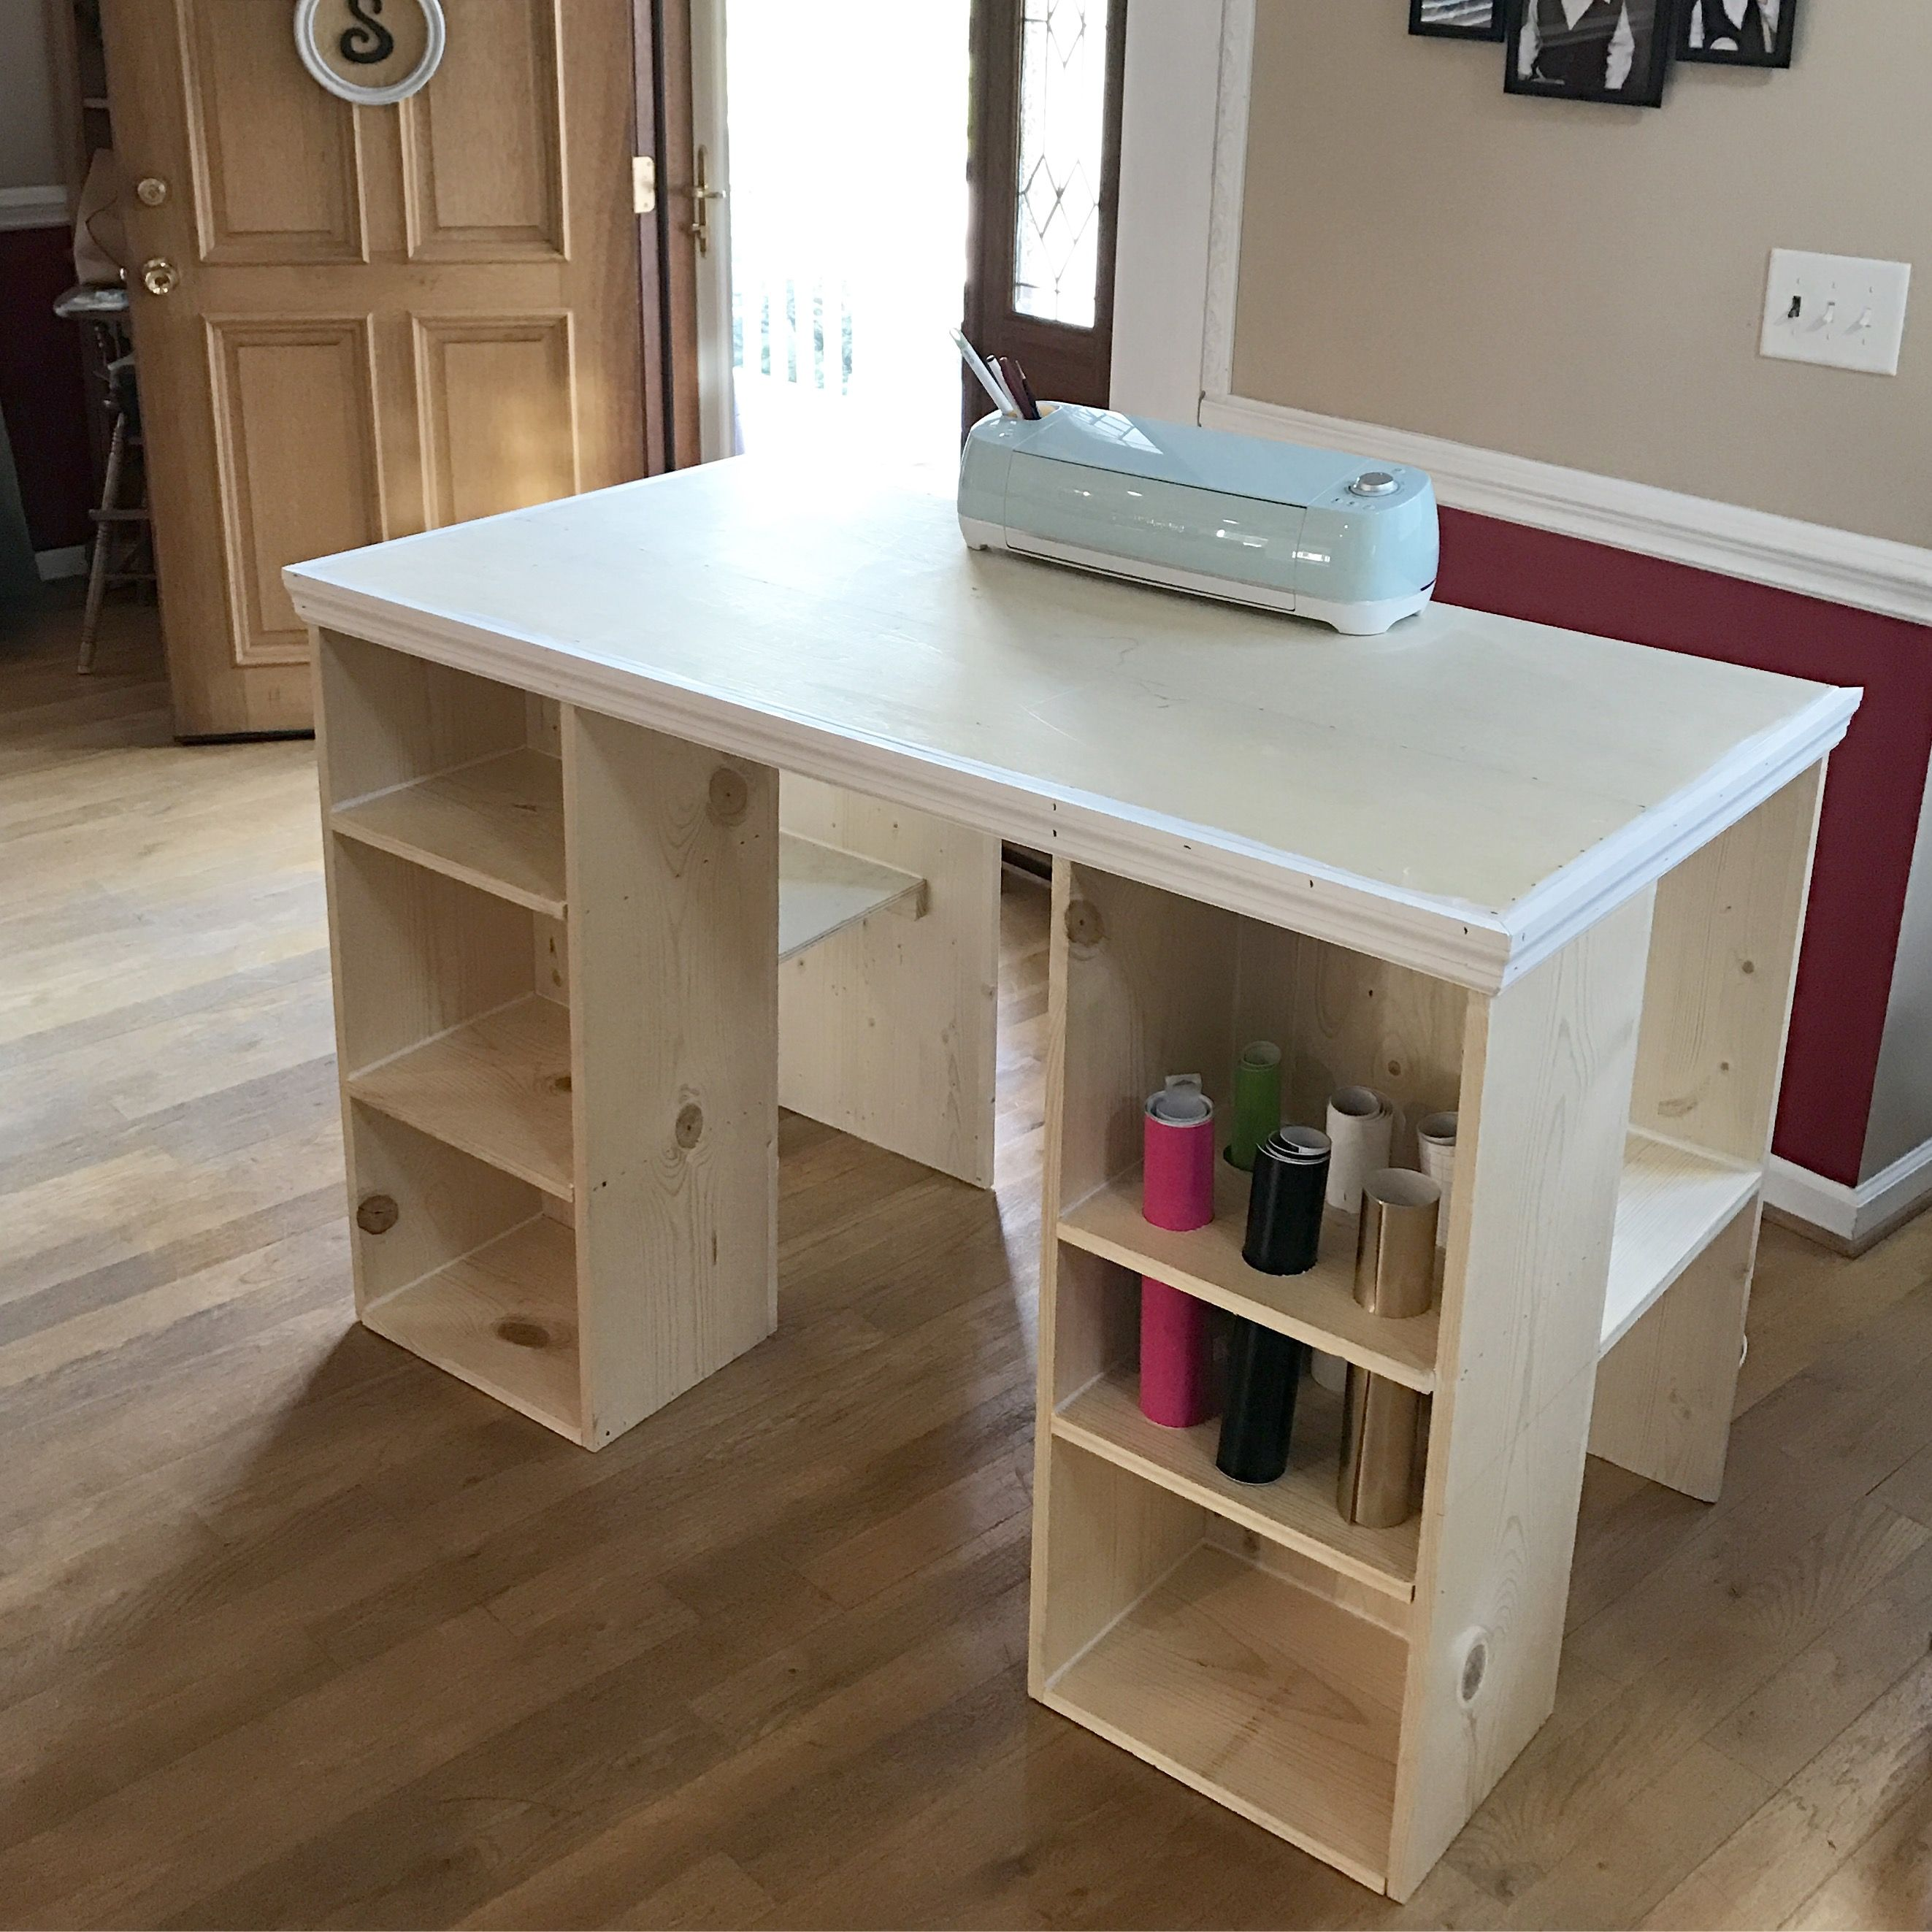 Diy Craft Room Table: DIY Cricut/ Craft Table. My Hubby's Awesome! (just Add